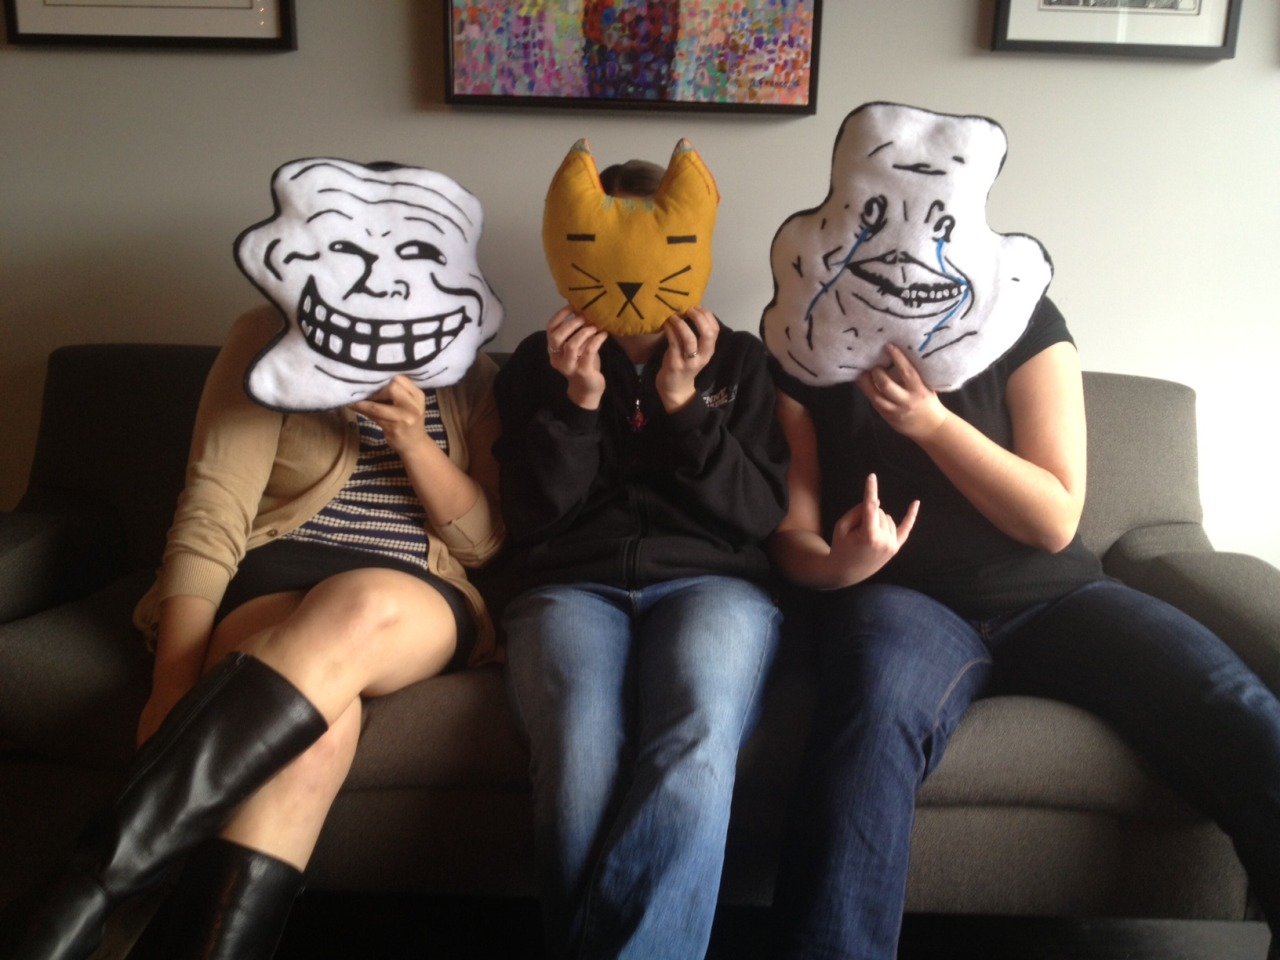 Kristin, Beth, and Aneta show off some of our office decor from awesome Tumblr users!  The Troll and Forever Alone pillows come from DerpShop, and the cat pillow is from Whitney, owner of Fill It with Diamonds. Thanks for making our office pillows awesome, guys!